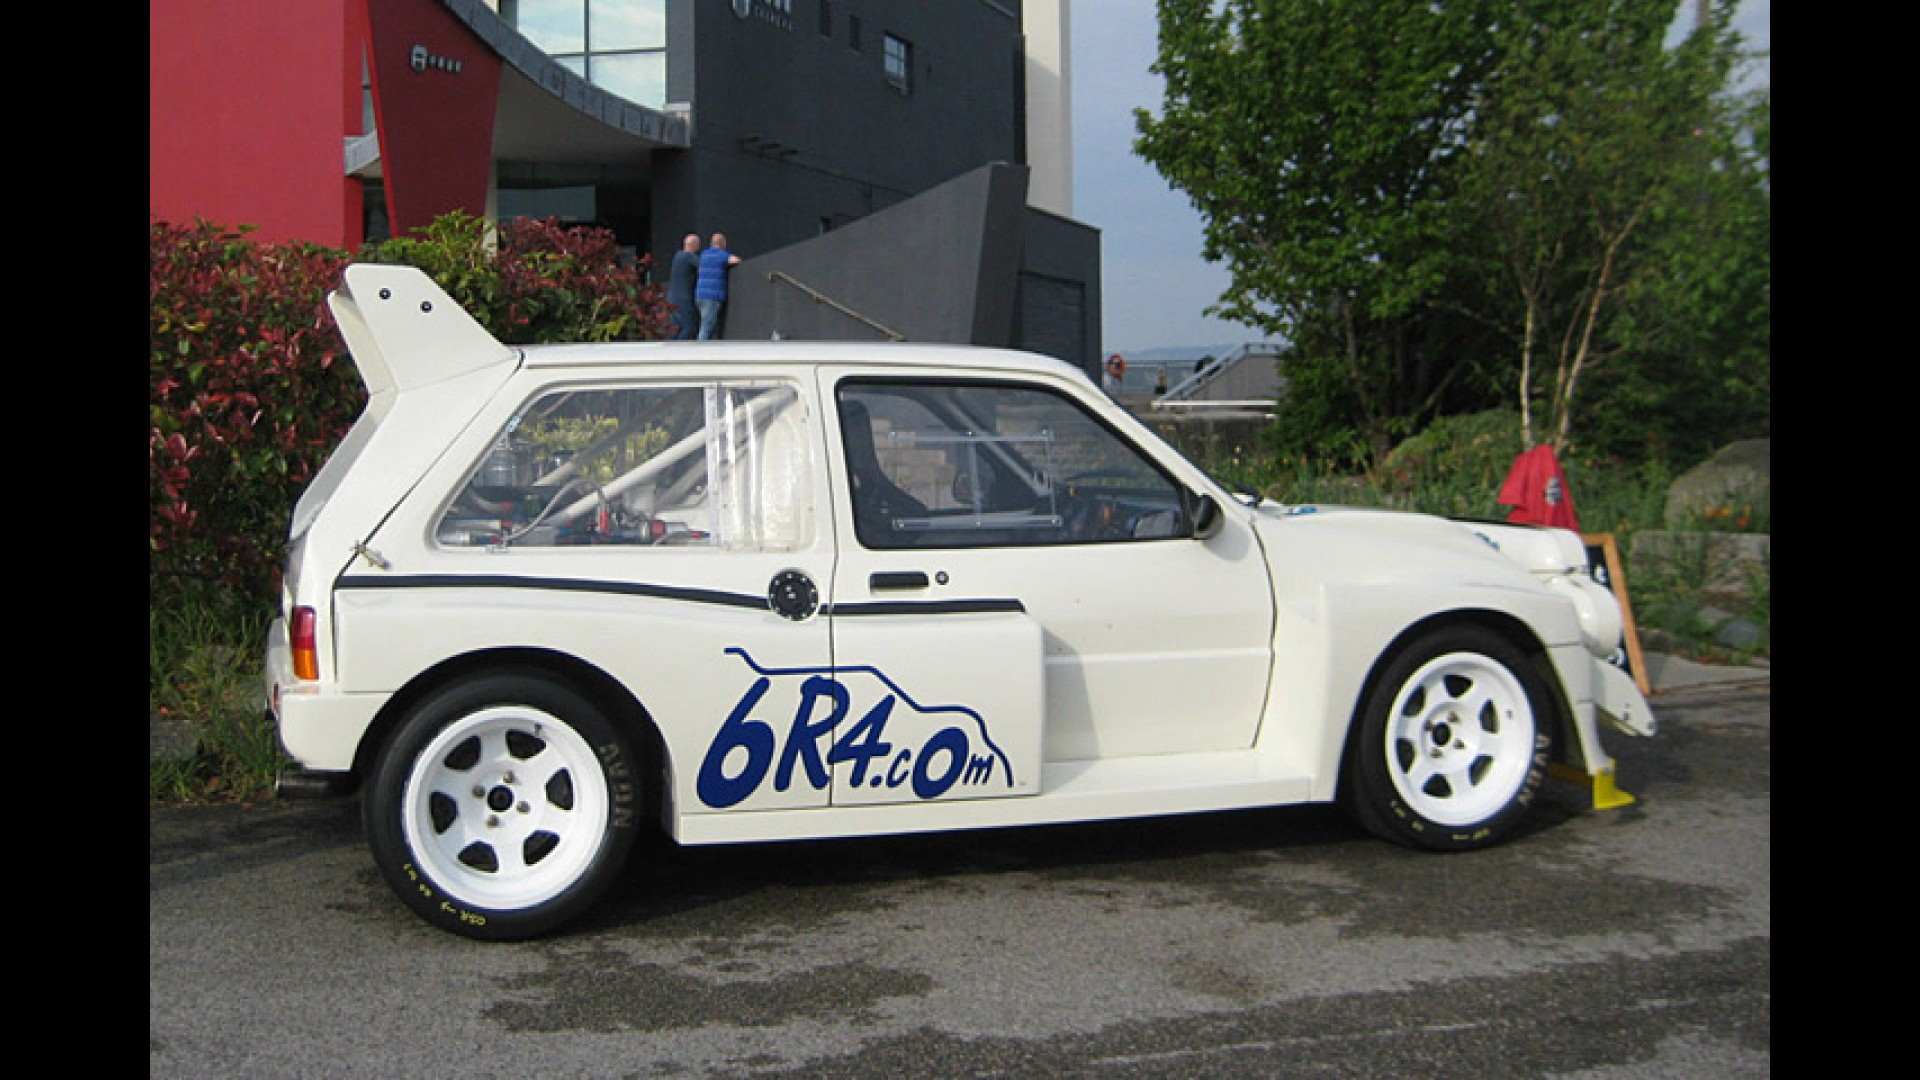 Unusual Used Rally Car For Sale Ideas - Classic Cars Ideas - boiq.info